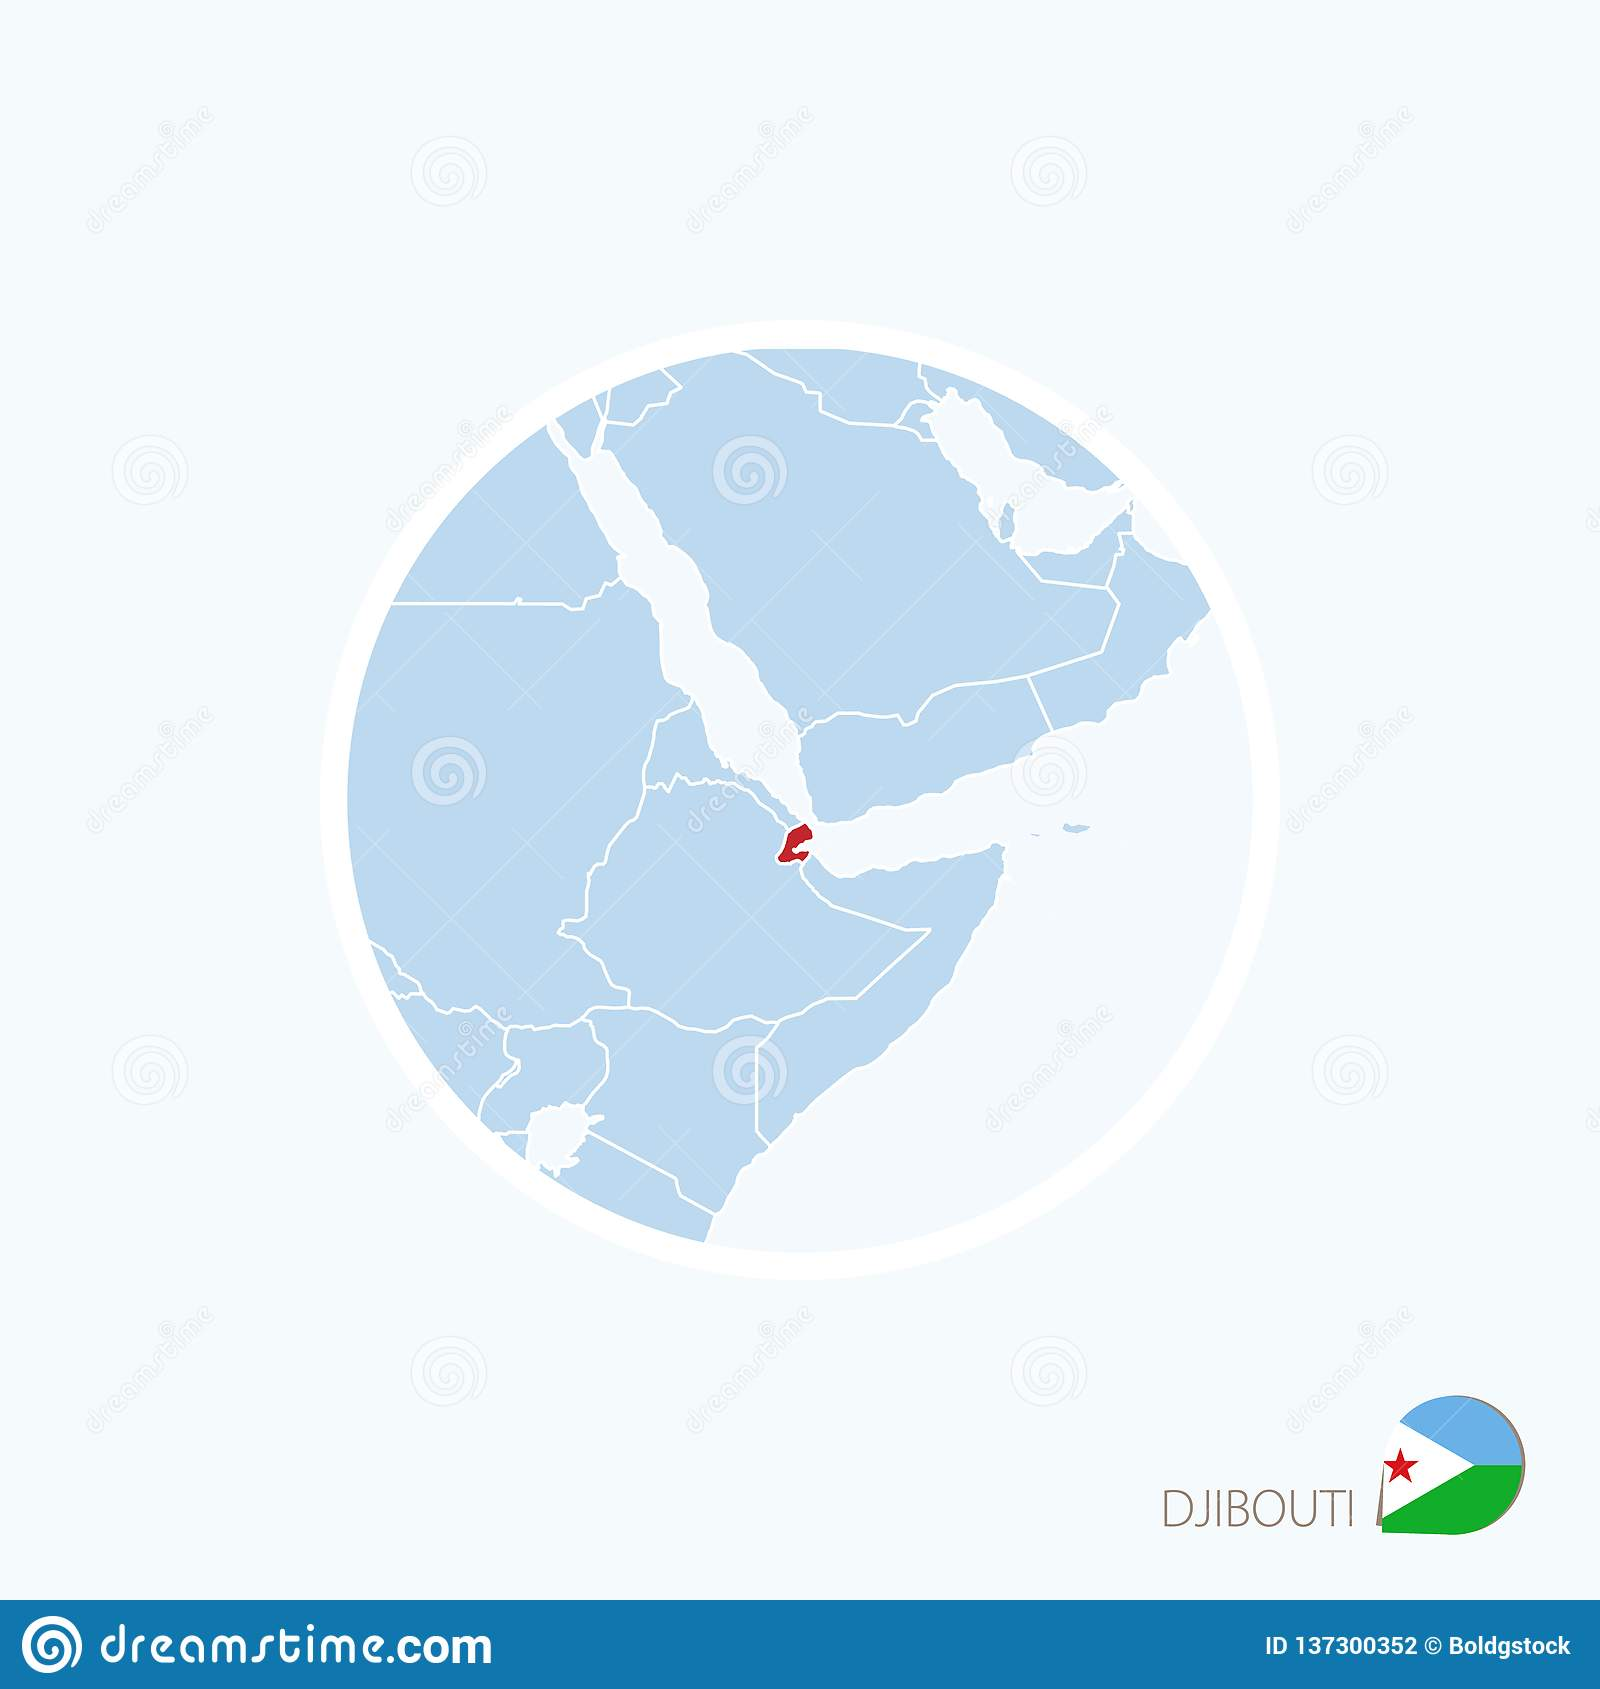 Map Icon Of Djibouti. Blue Map Of Africa With Highlighted Djibouti ...